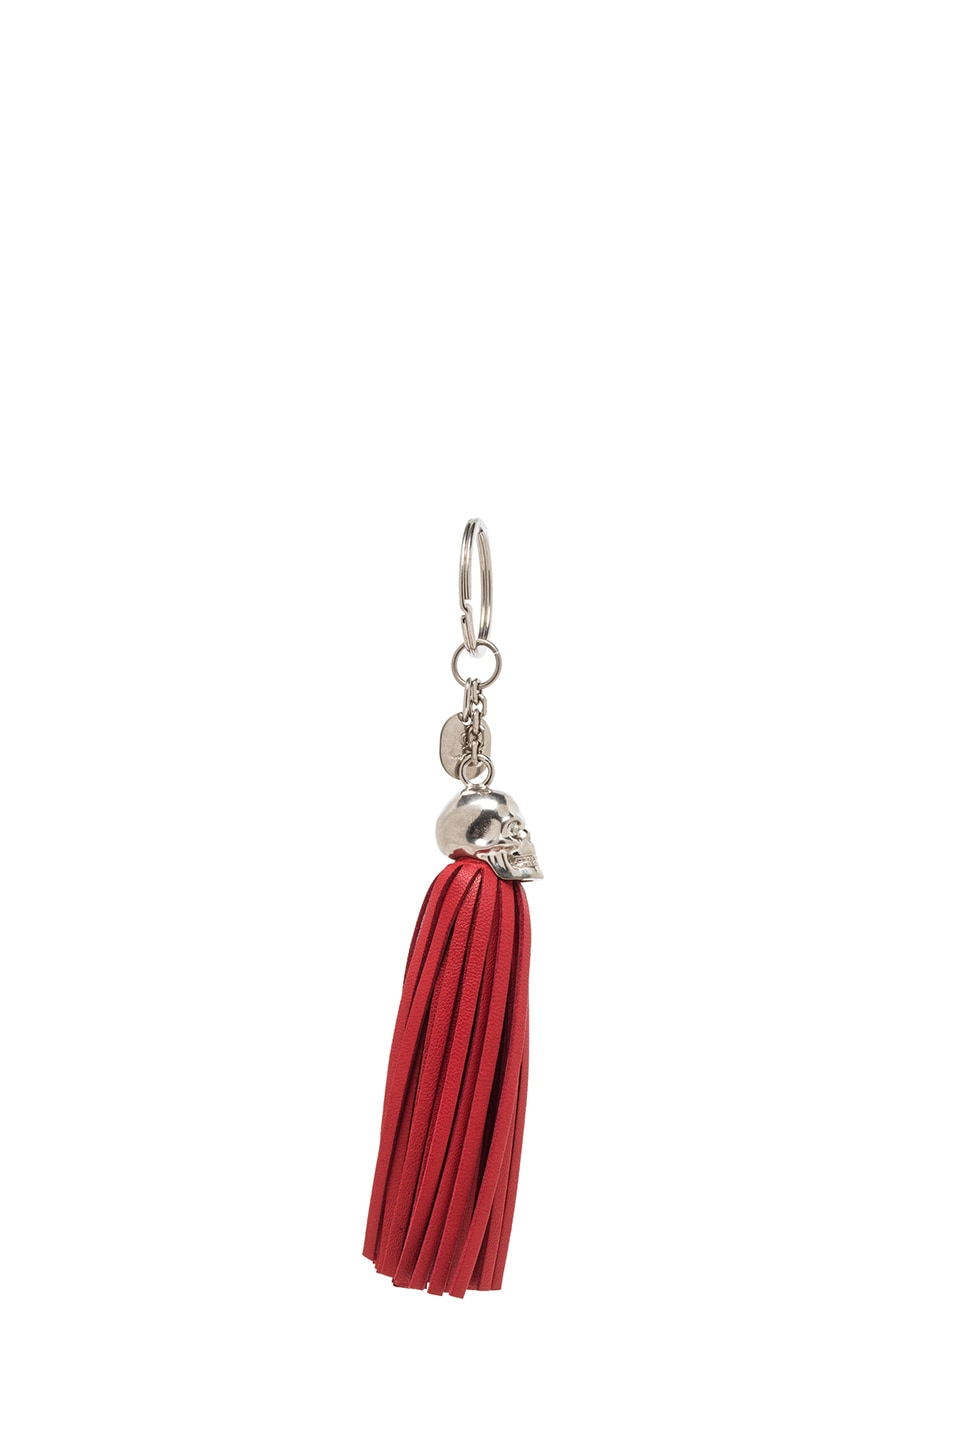 Image 2 of Alexander McQueen Leather Tassel Key Ring in Shiny Red